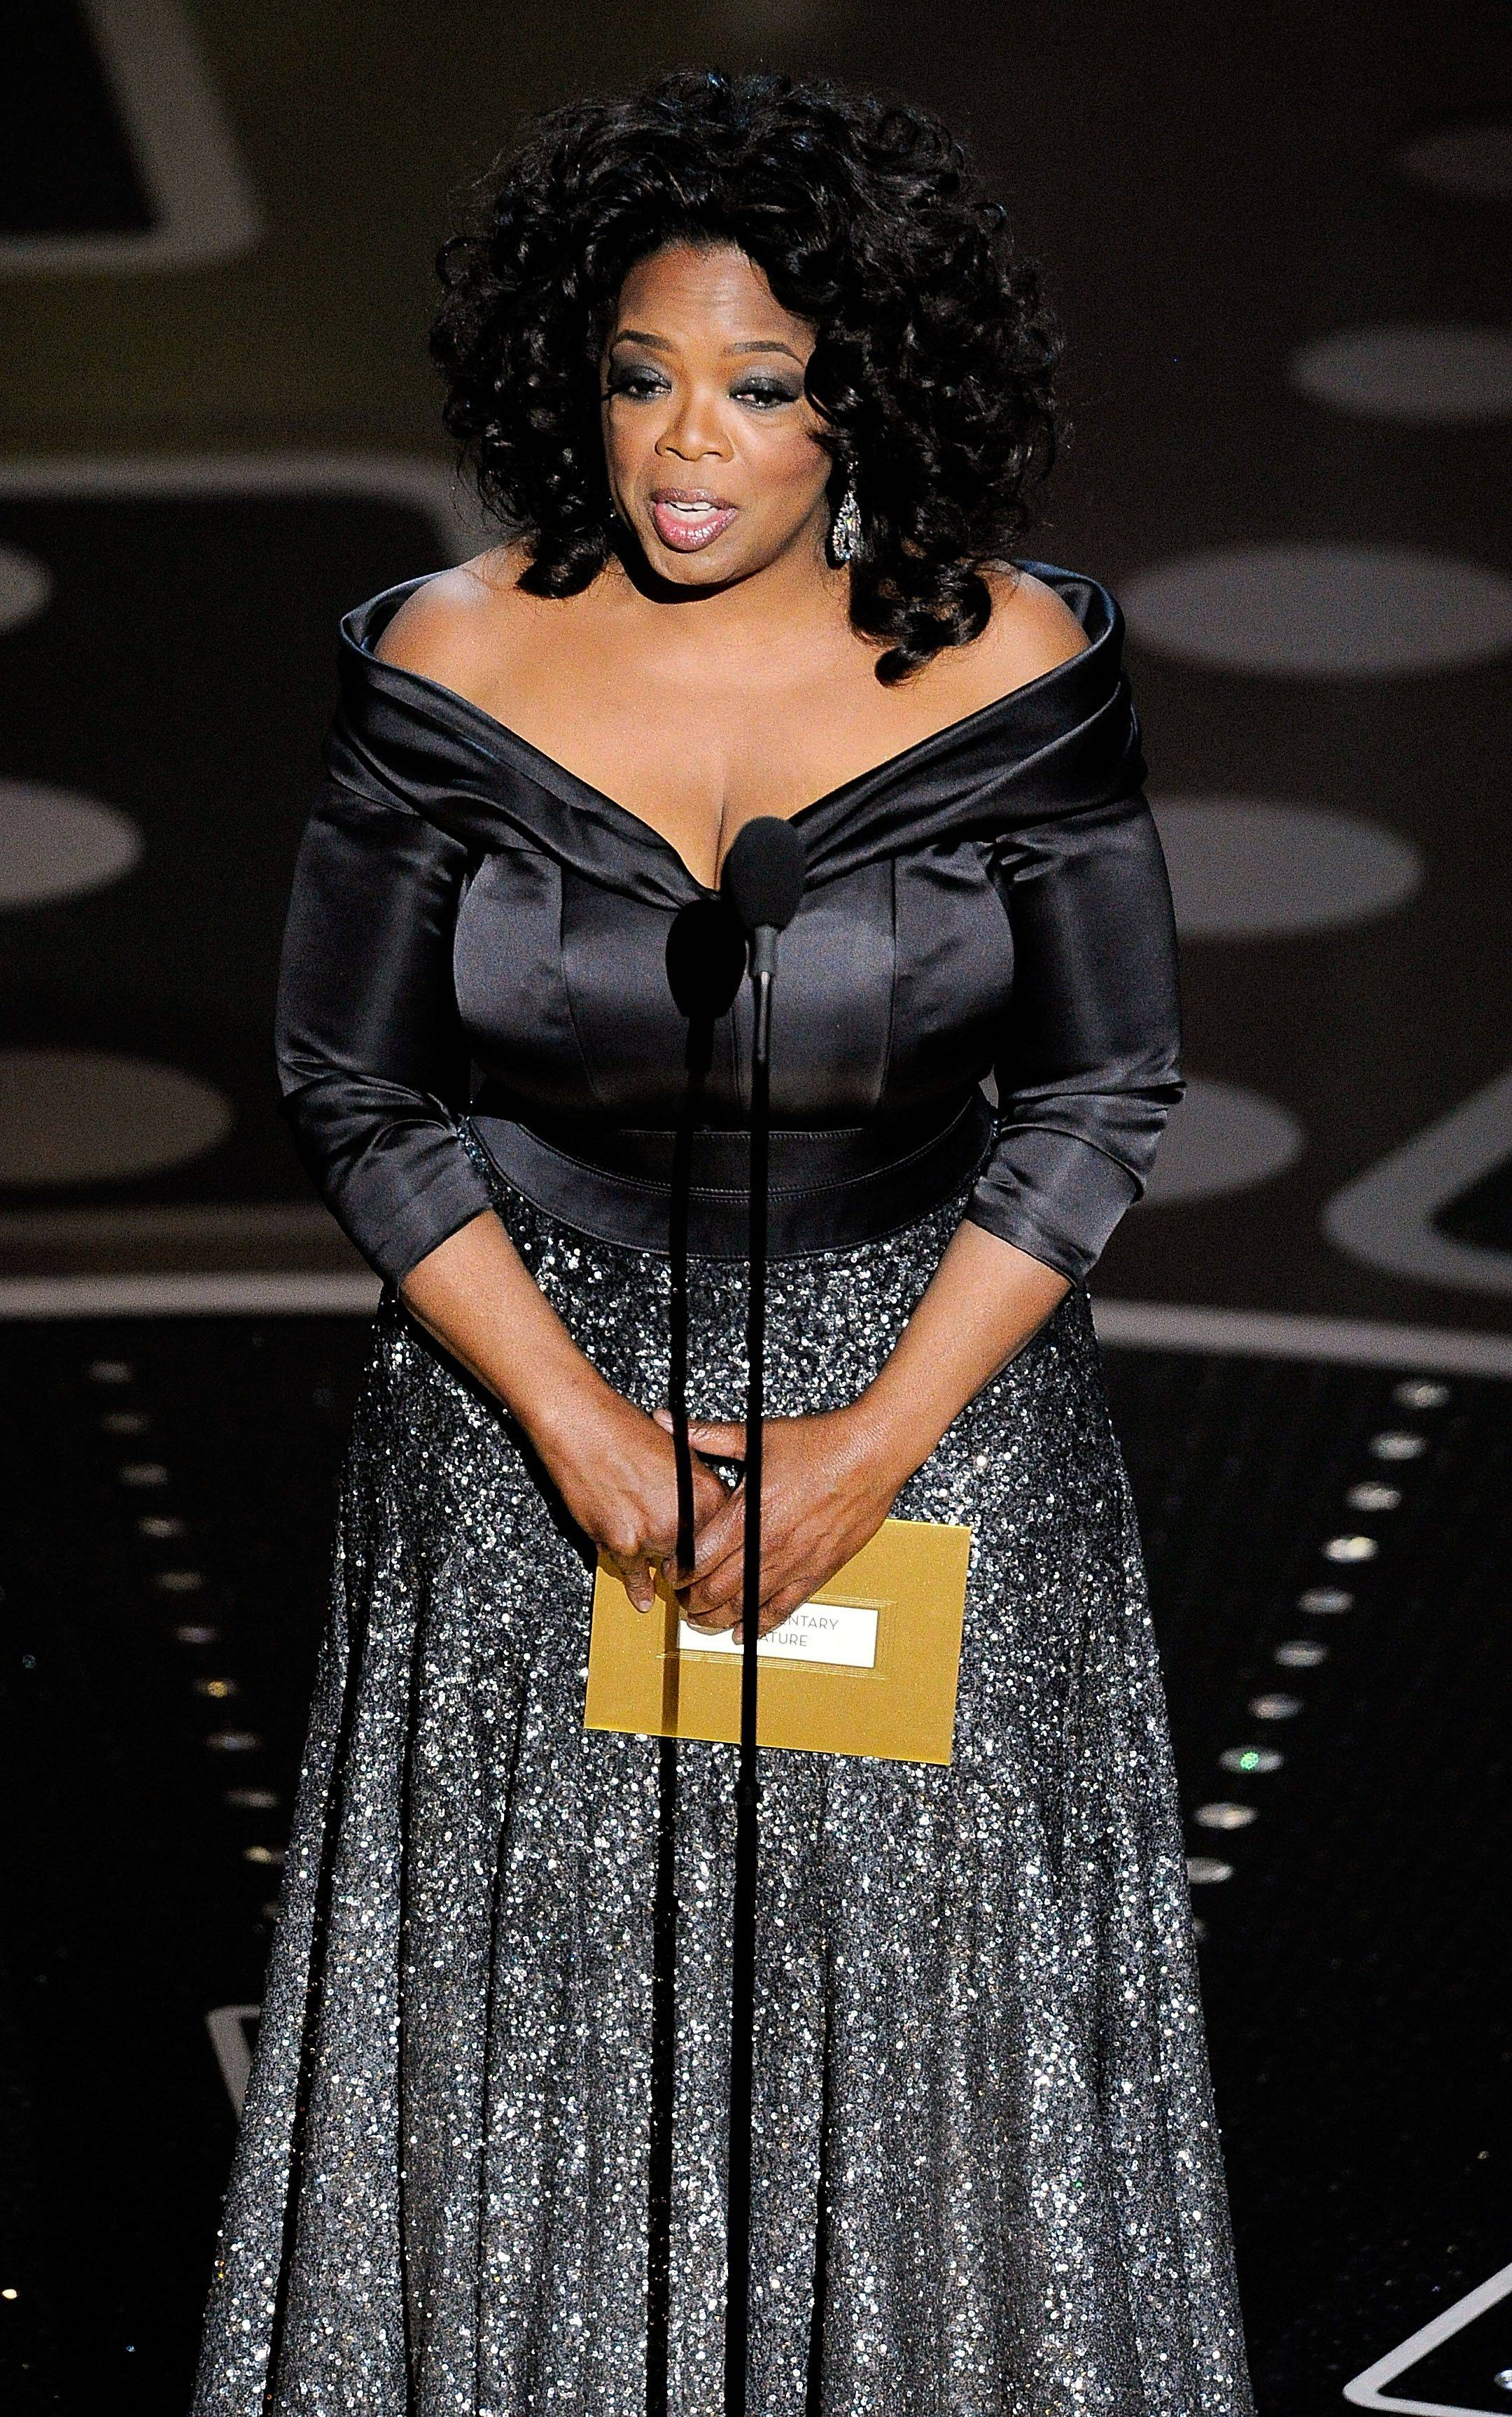 Associated PressOprah Winfrey presents the award for best documentary feature during the 83rd Academy Awards.